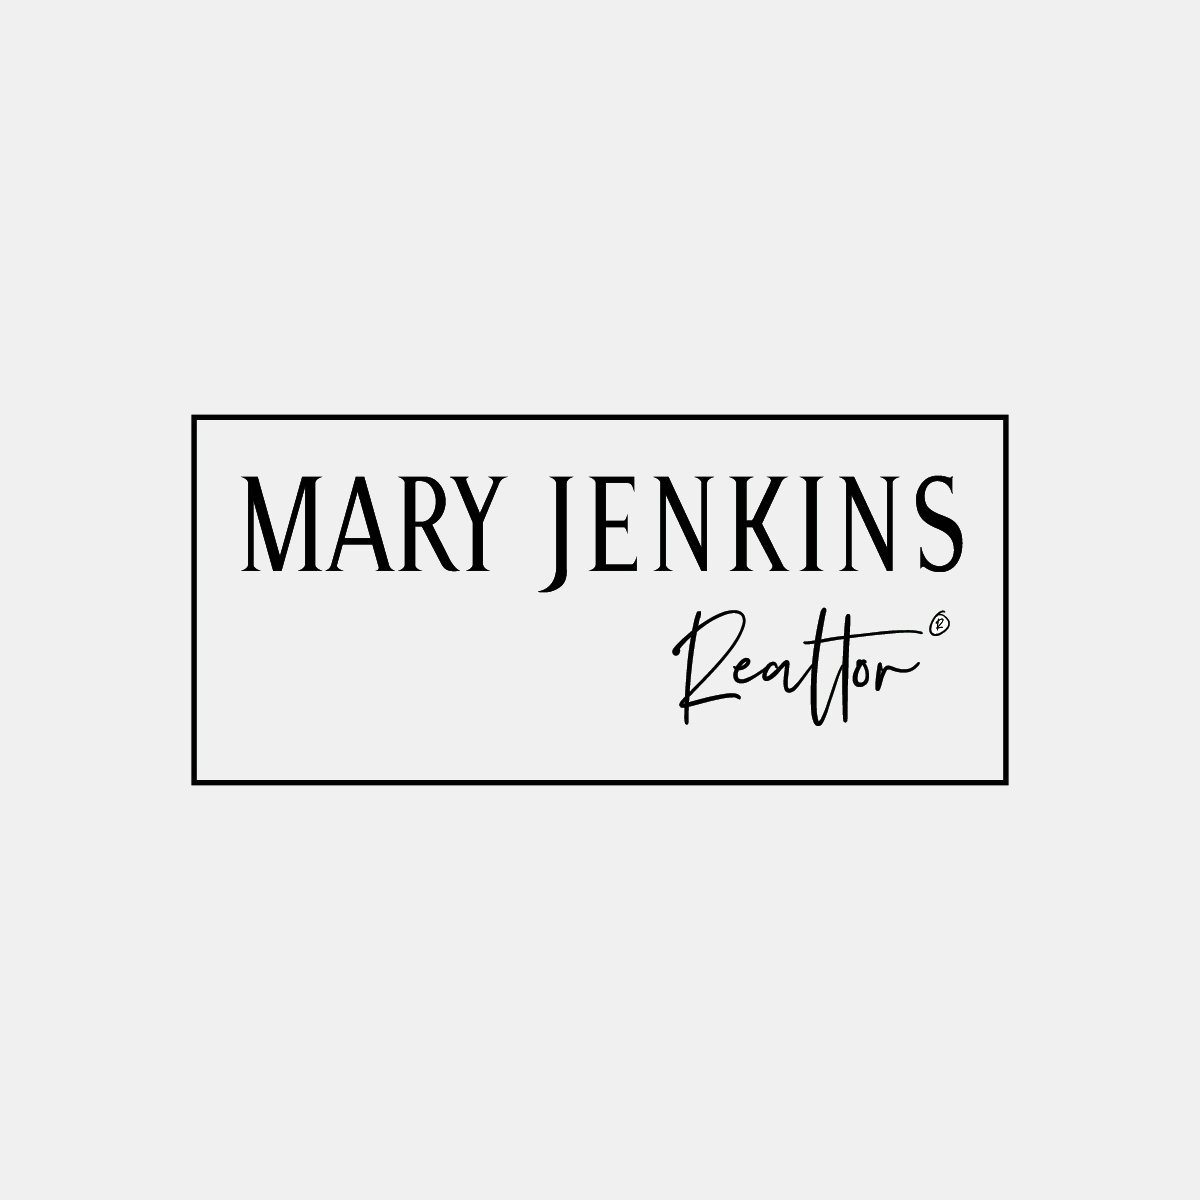 Mary Jenkins Realty Website Branding Images-01.png